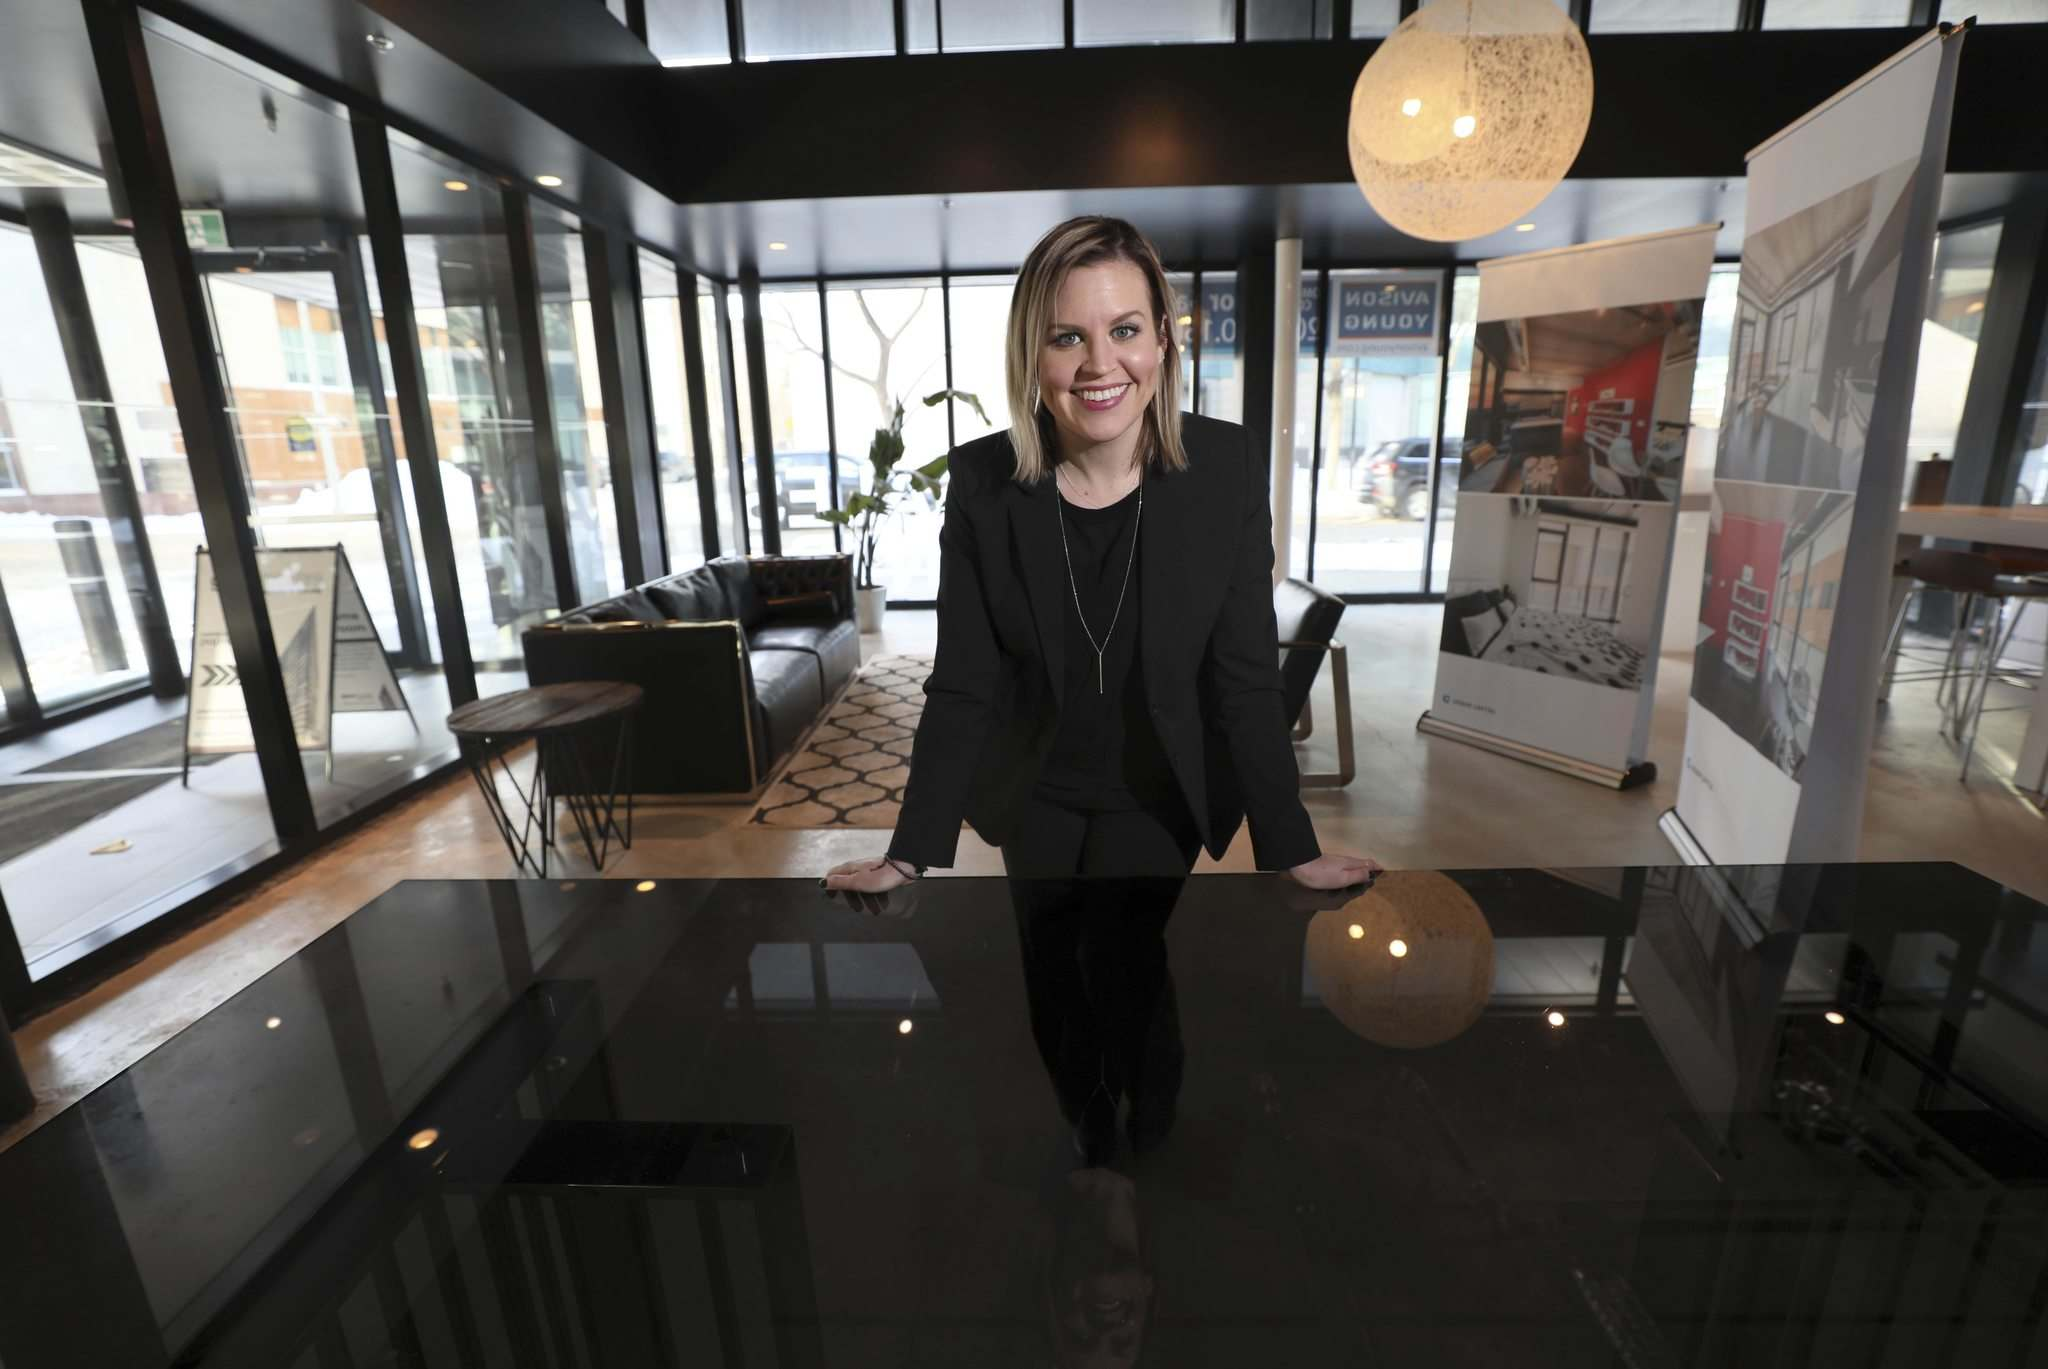 Avison Young senior associate Kyra Winfield is marketing the space as commercial condos.</p>